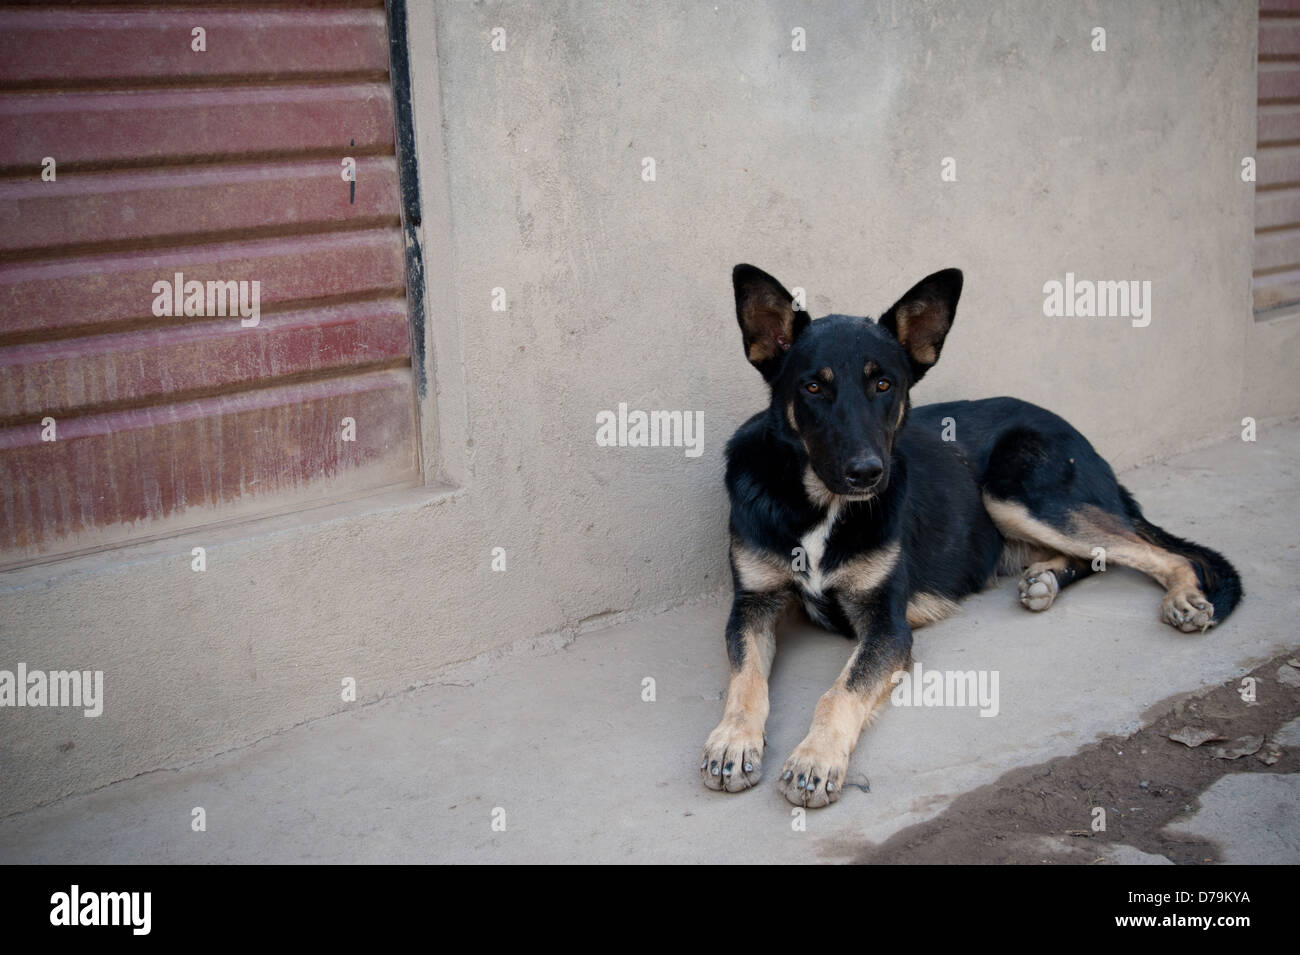 Dog resting in the slums of Bolivia - Stock Image